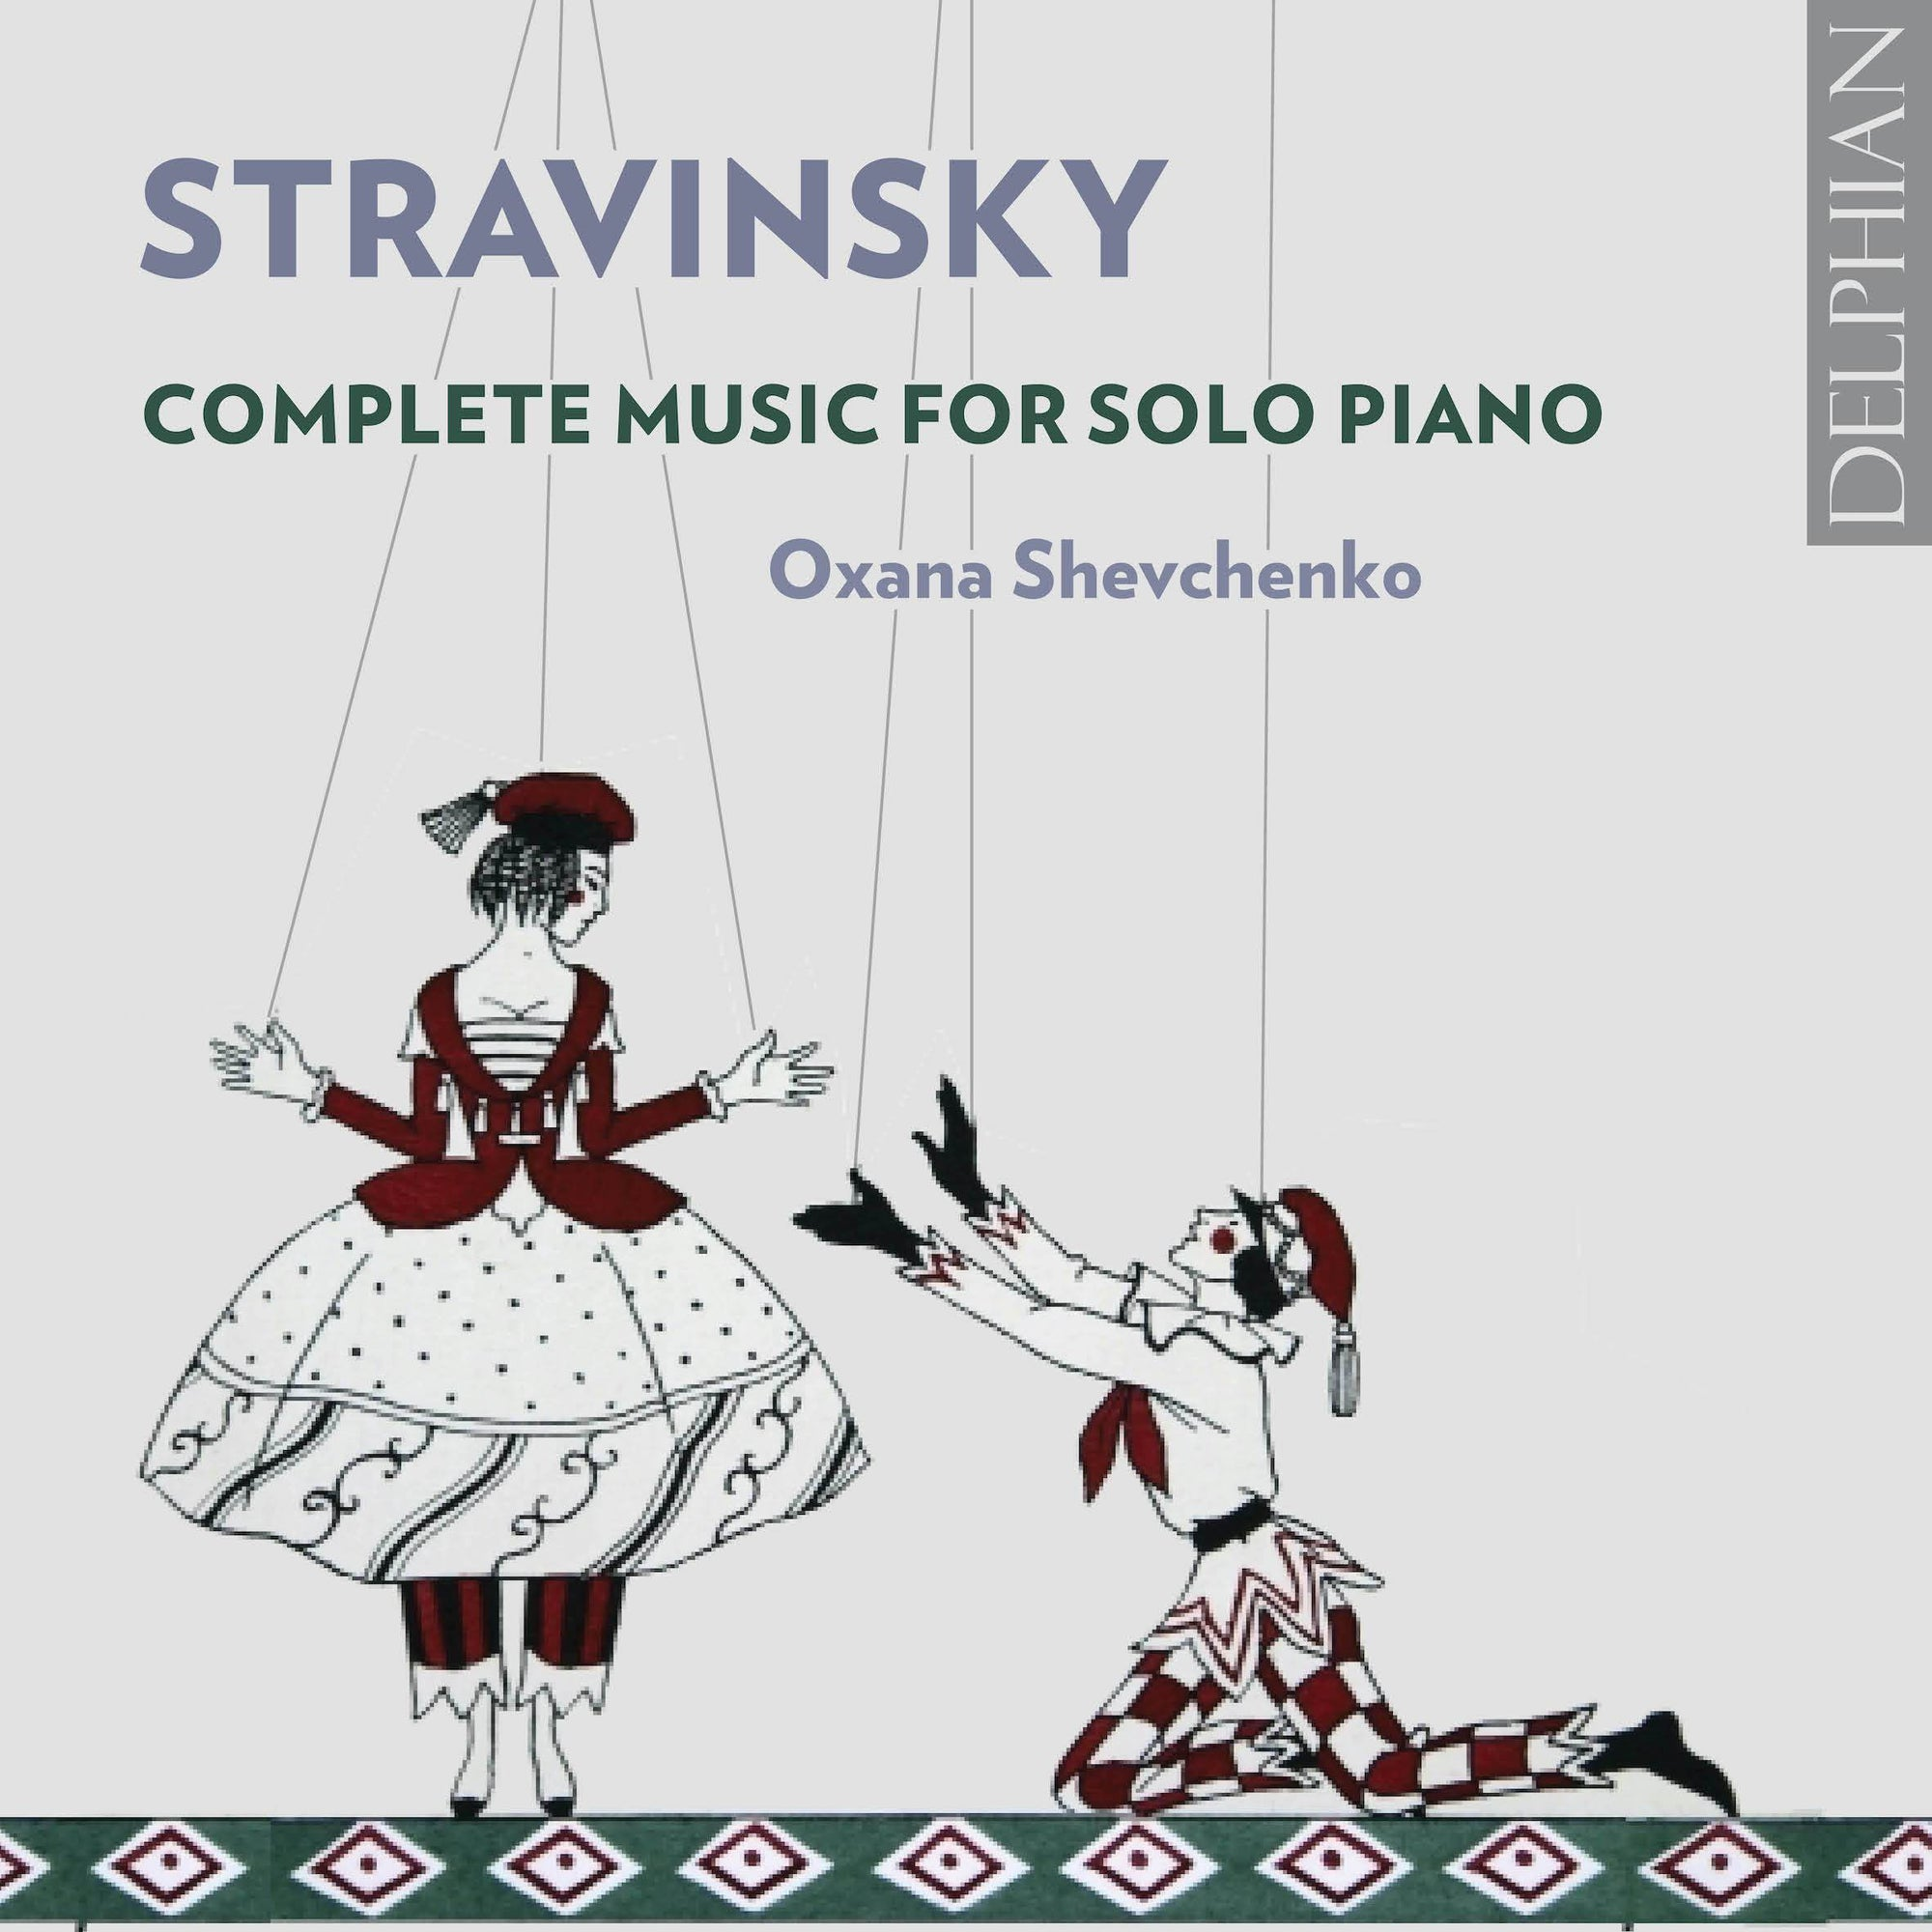 Stravinsky: Complete Music for Solo Piano CD Delphian Records